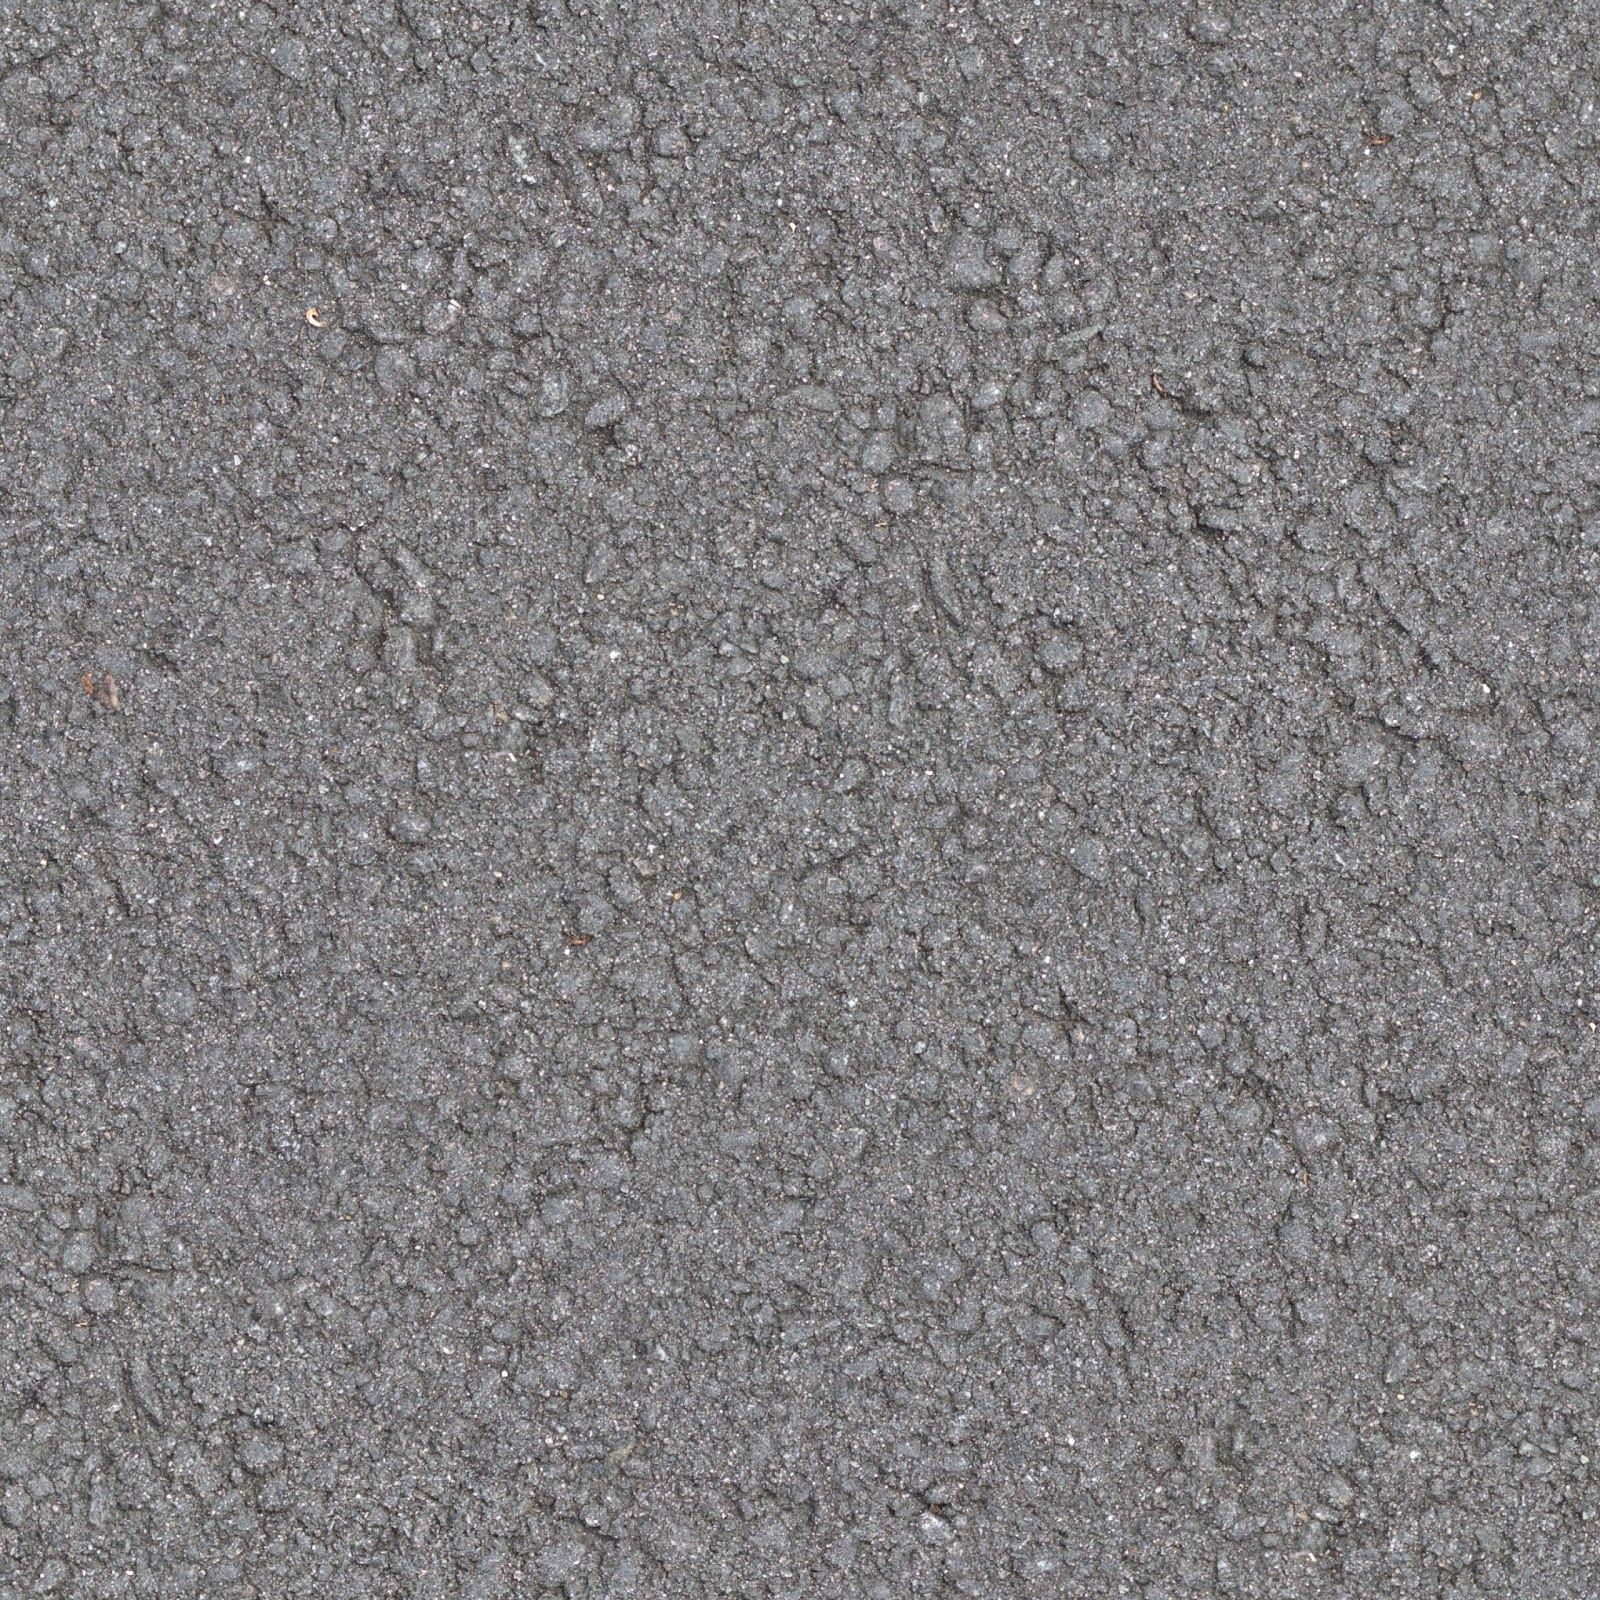 High Resolution Seamless Textures: Seamless asphalt tarmac ...